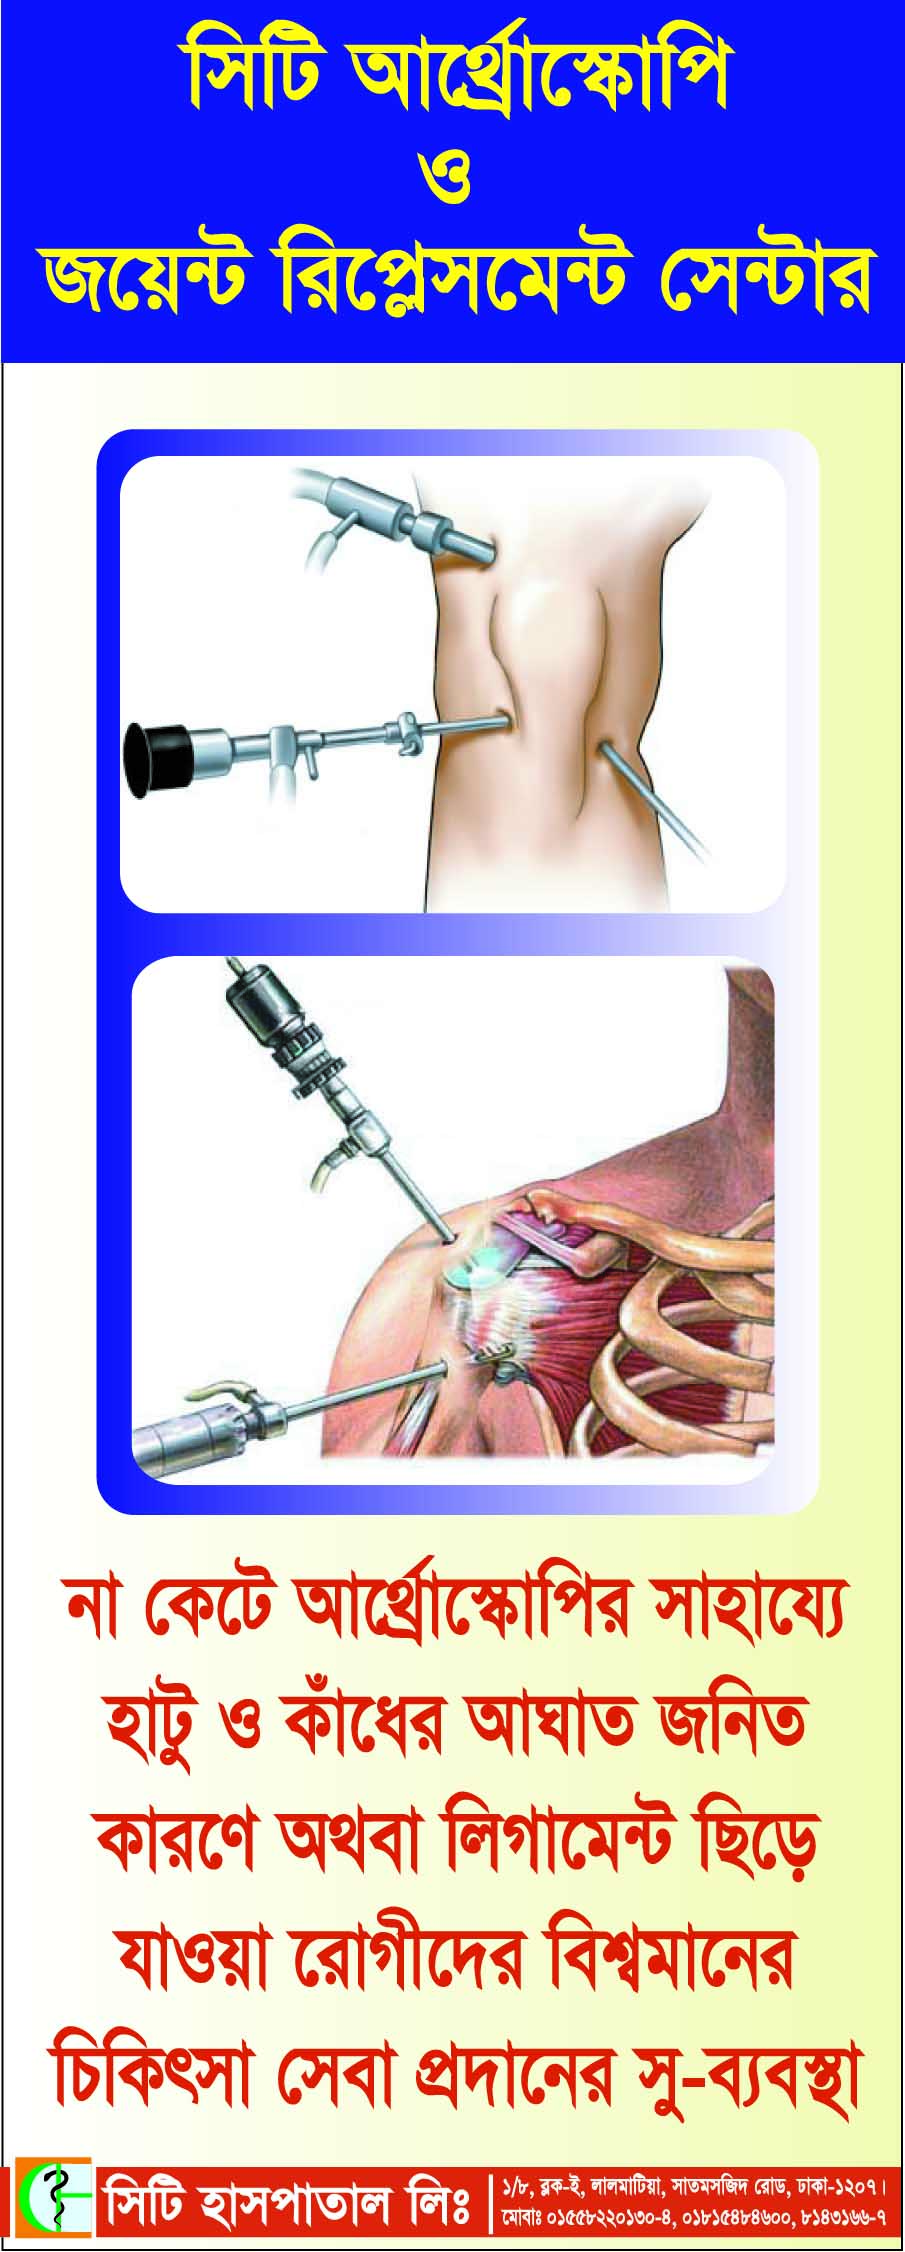 A Great Arthroscopic Surgery in Bangladesh